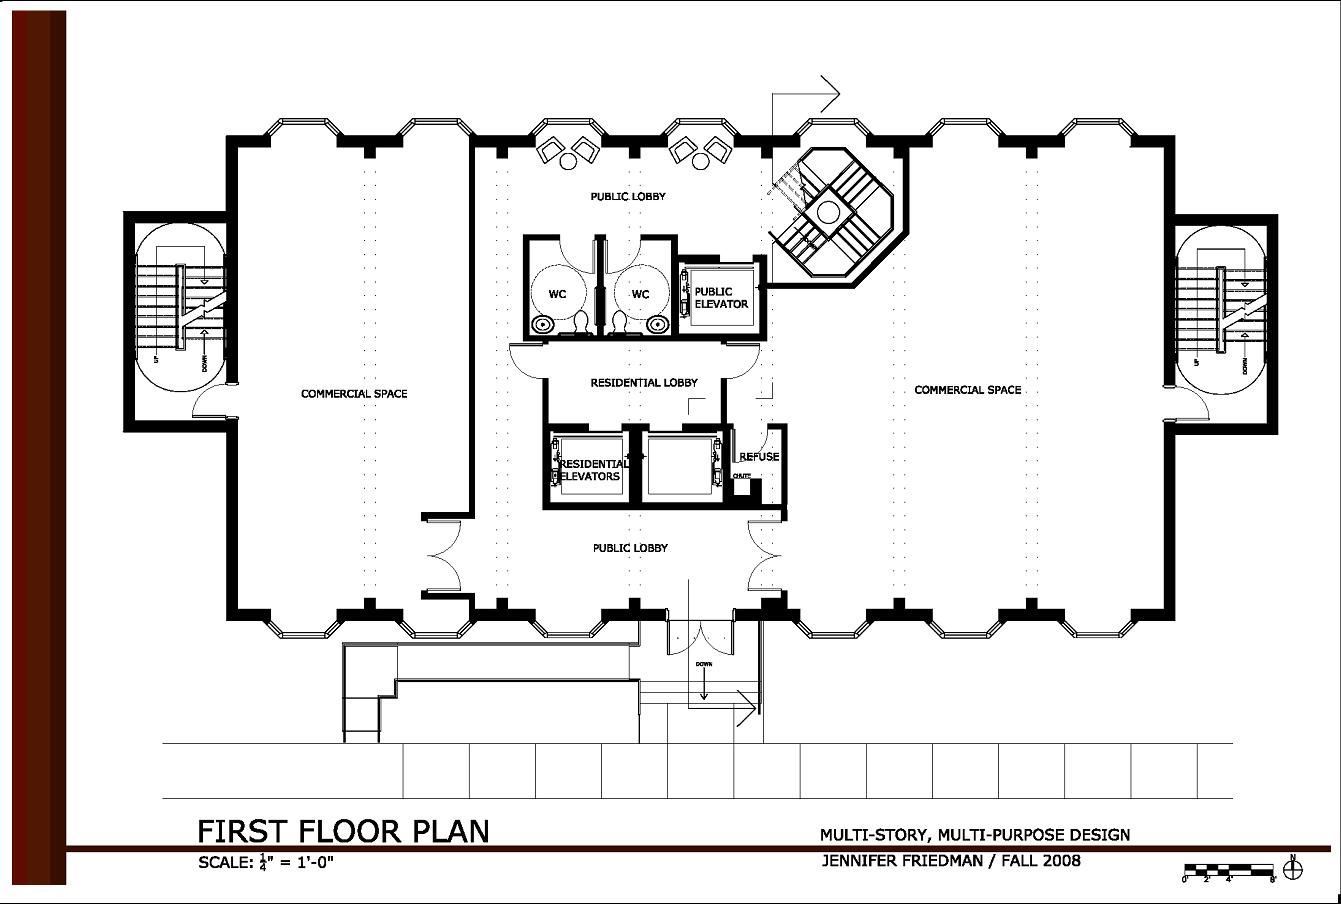 2 storey commercial building floor plan for 2 story commercial building plans